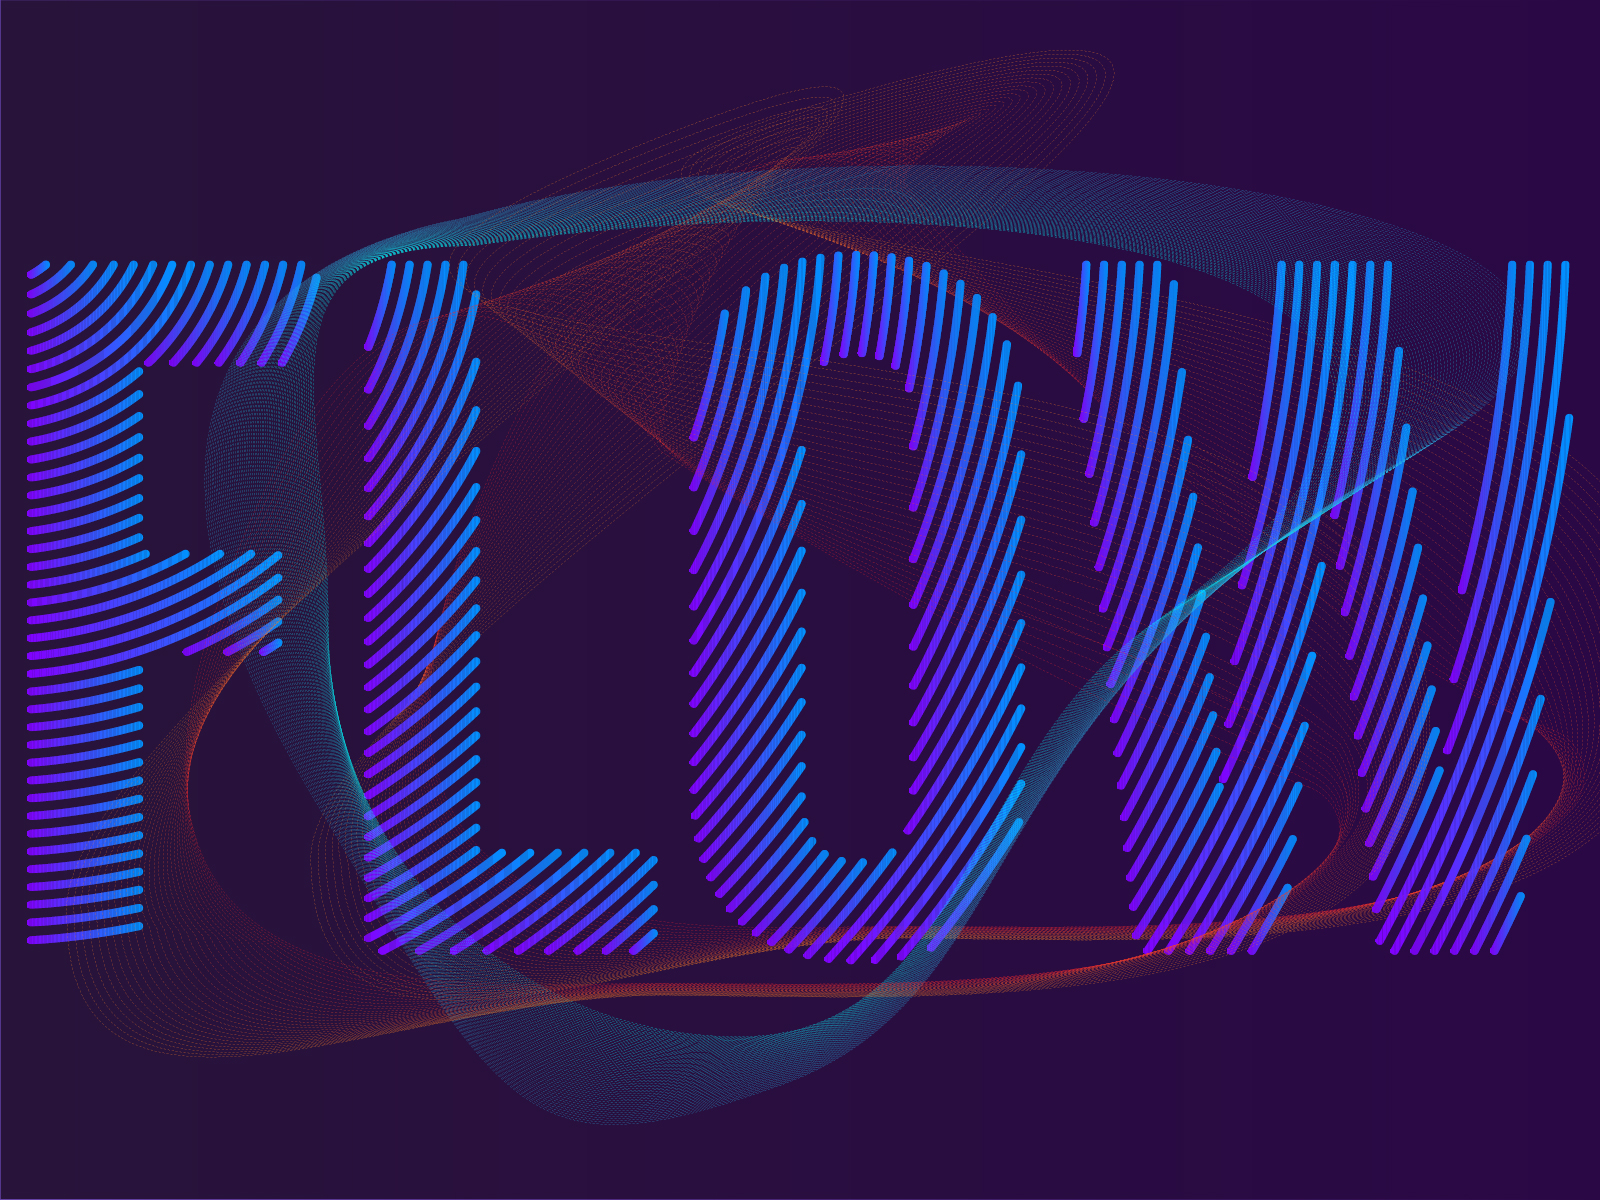 Get Into The Flow lets get back into the flowcurtis kaszycki on dribbble